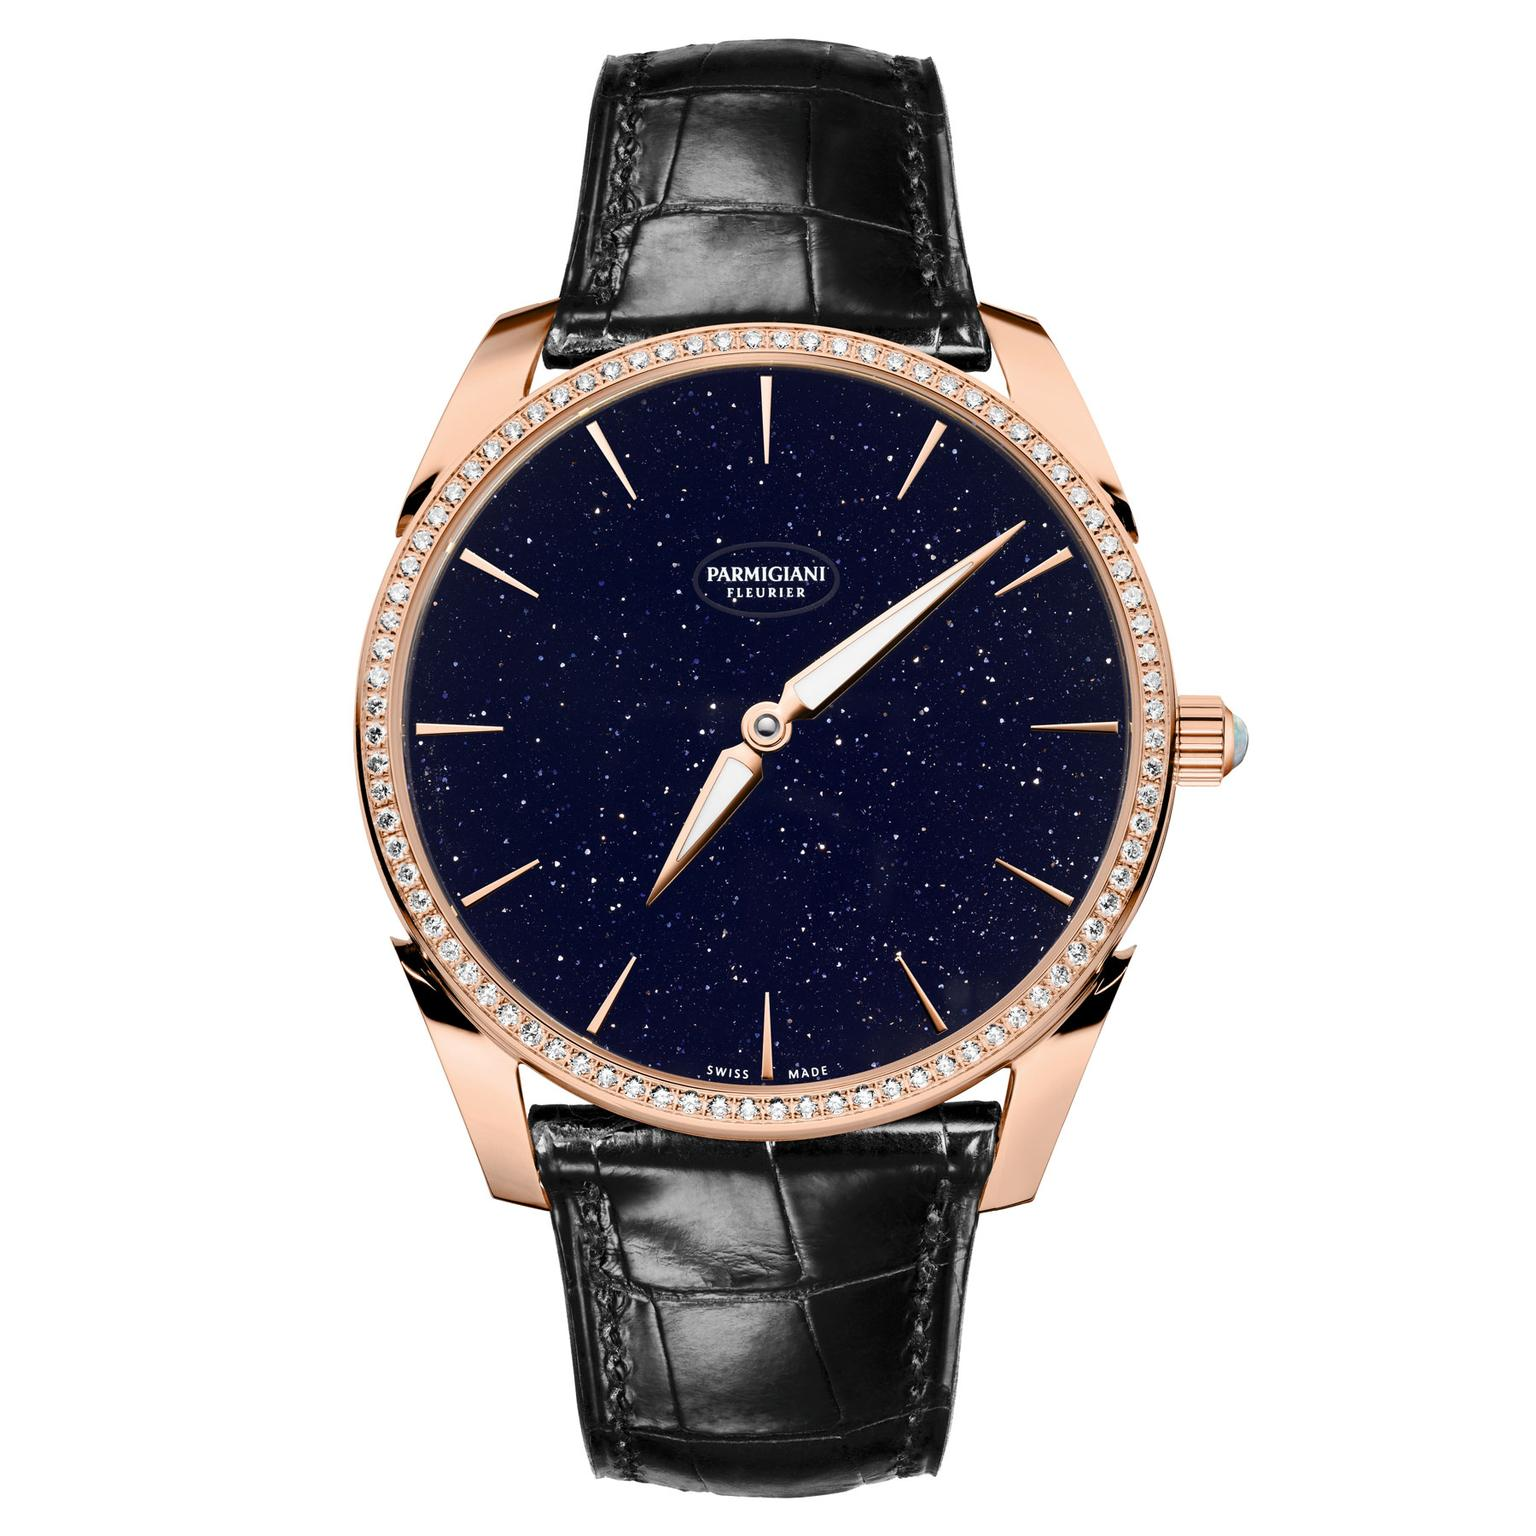 Parmigiani Tonda 1950 Set Galaxy watch